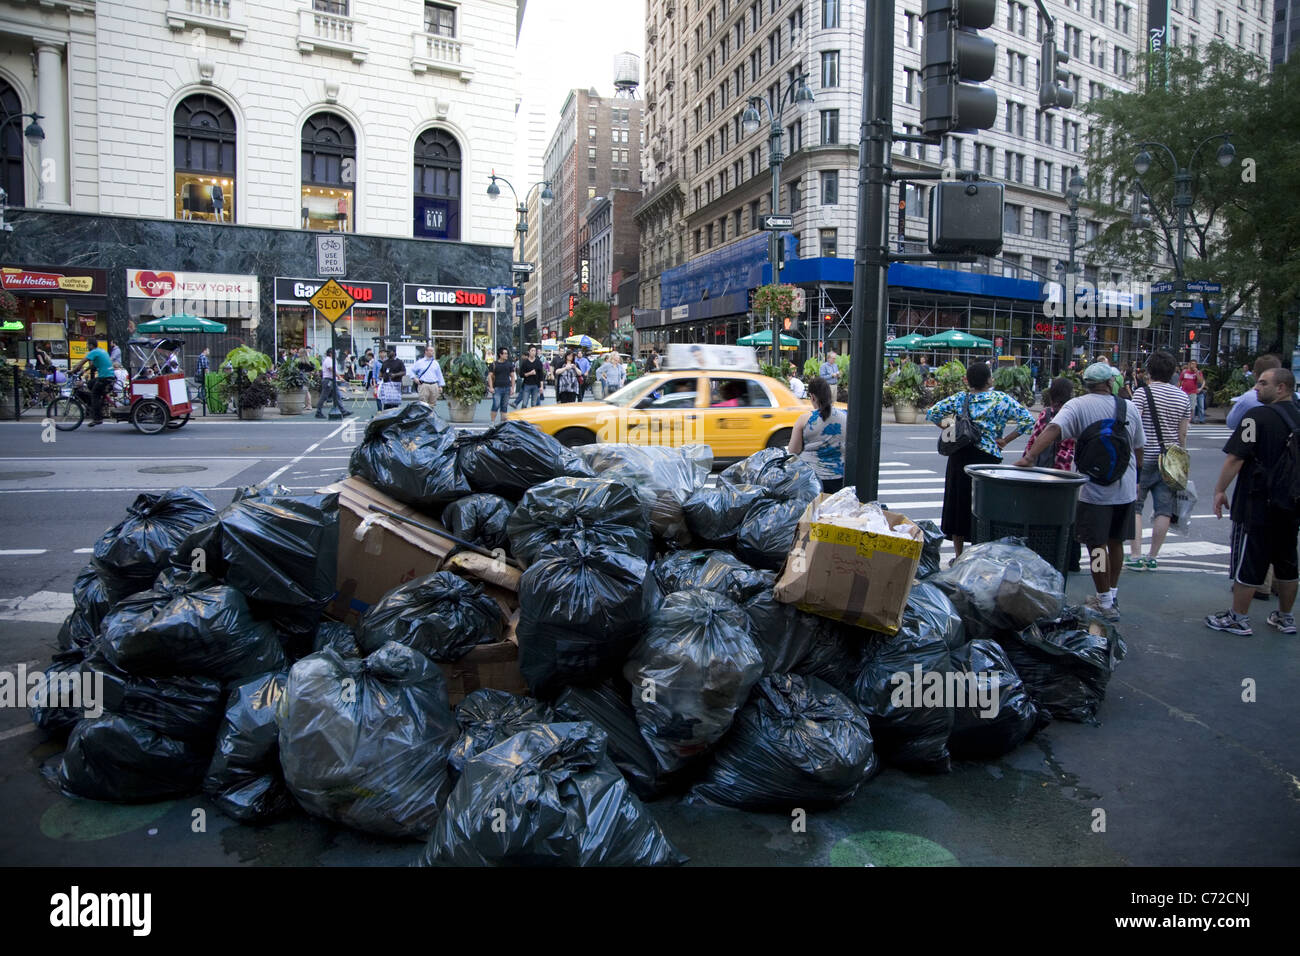 Image result for new york city trash